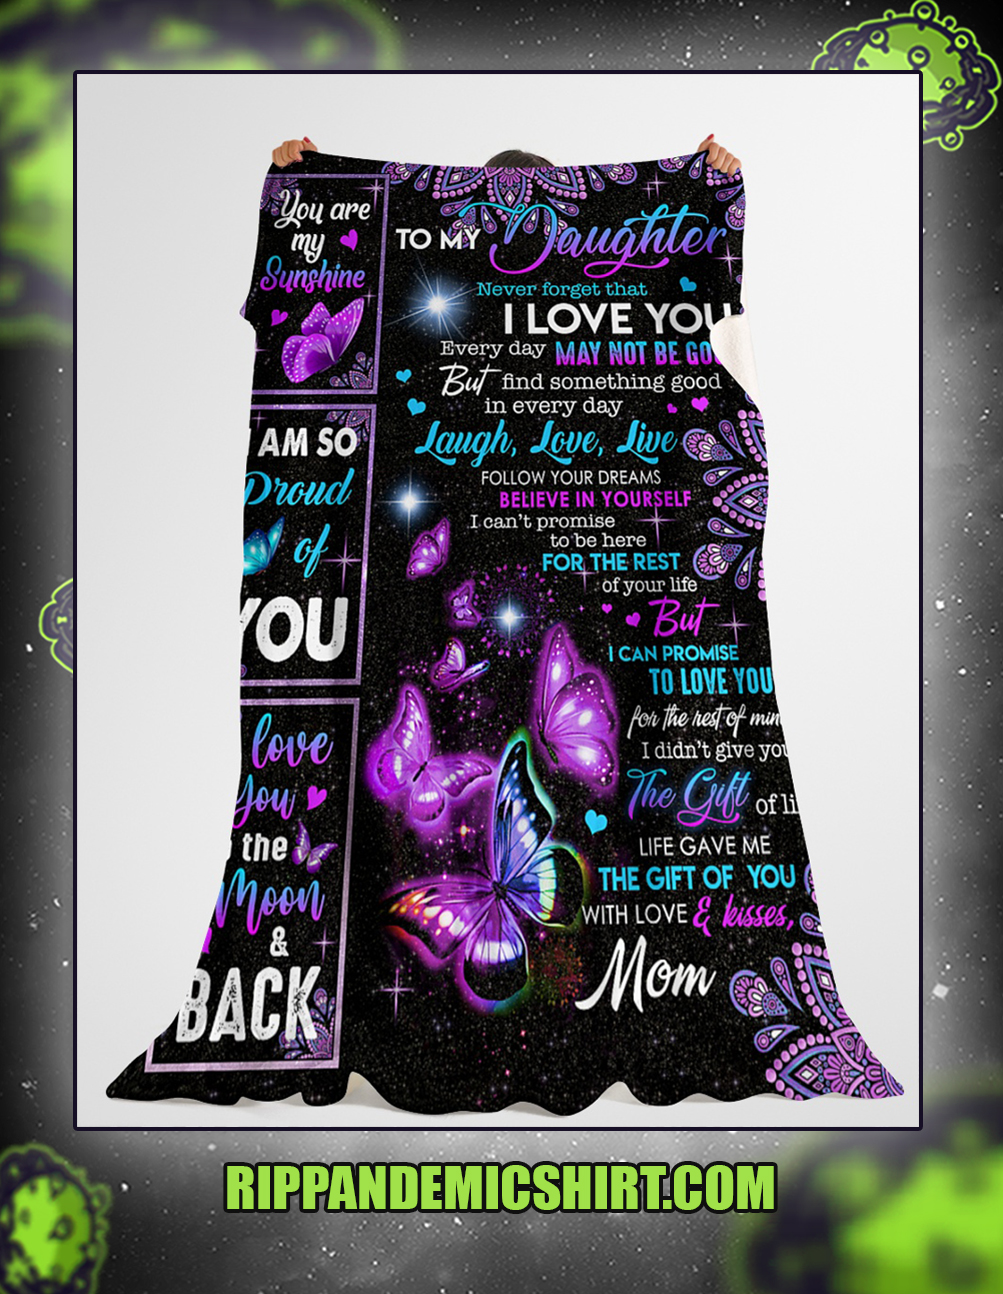 Butterfly To my daughter never forget that i love you blanket x-large